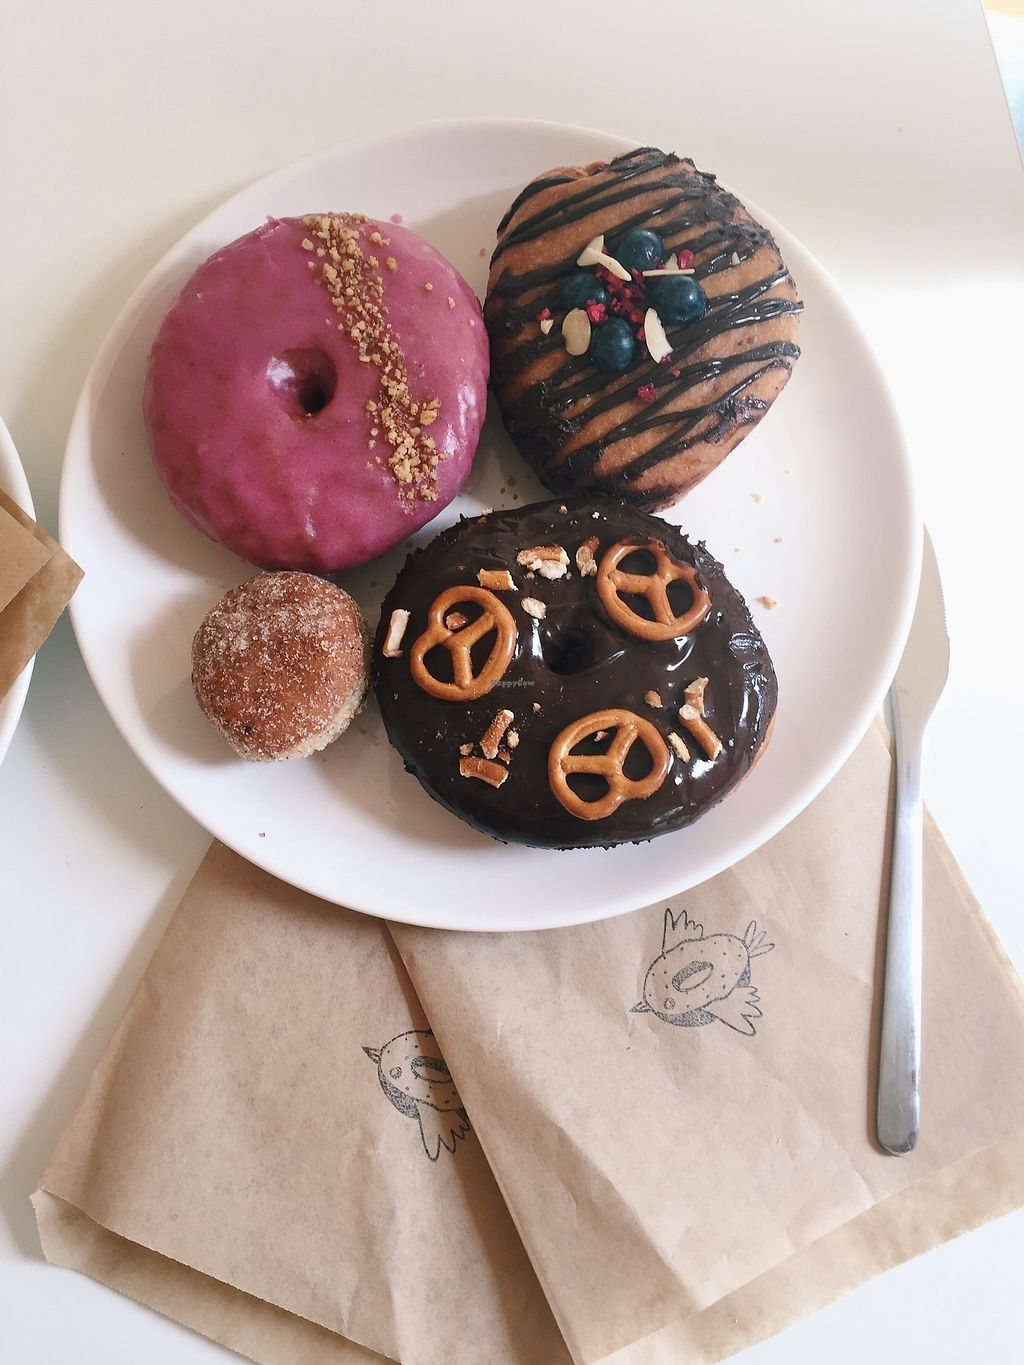 """Photo of Donut Shop  by <a href=""""/members/profile/OliviaFloyd"""">OliviaFloyd</a> <br/>Chai and walnut, chocolate and berries, chocolate pretzel and a cinnamon ball <br/> April 13, 2018  - <a href='/contact/abuse/image/97758/385015'>Report</a>"""